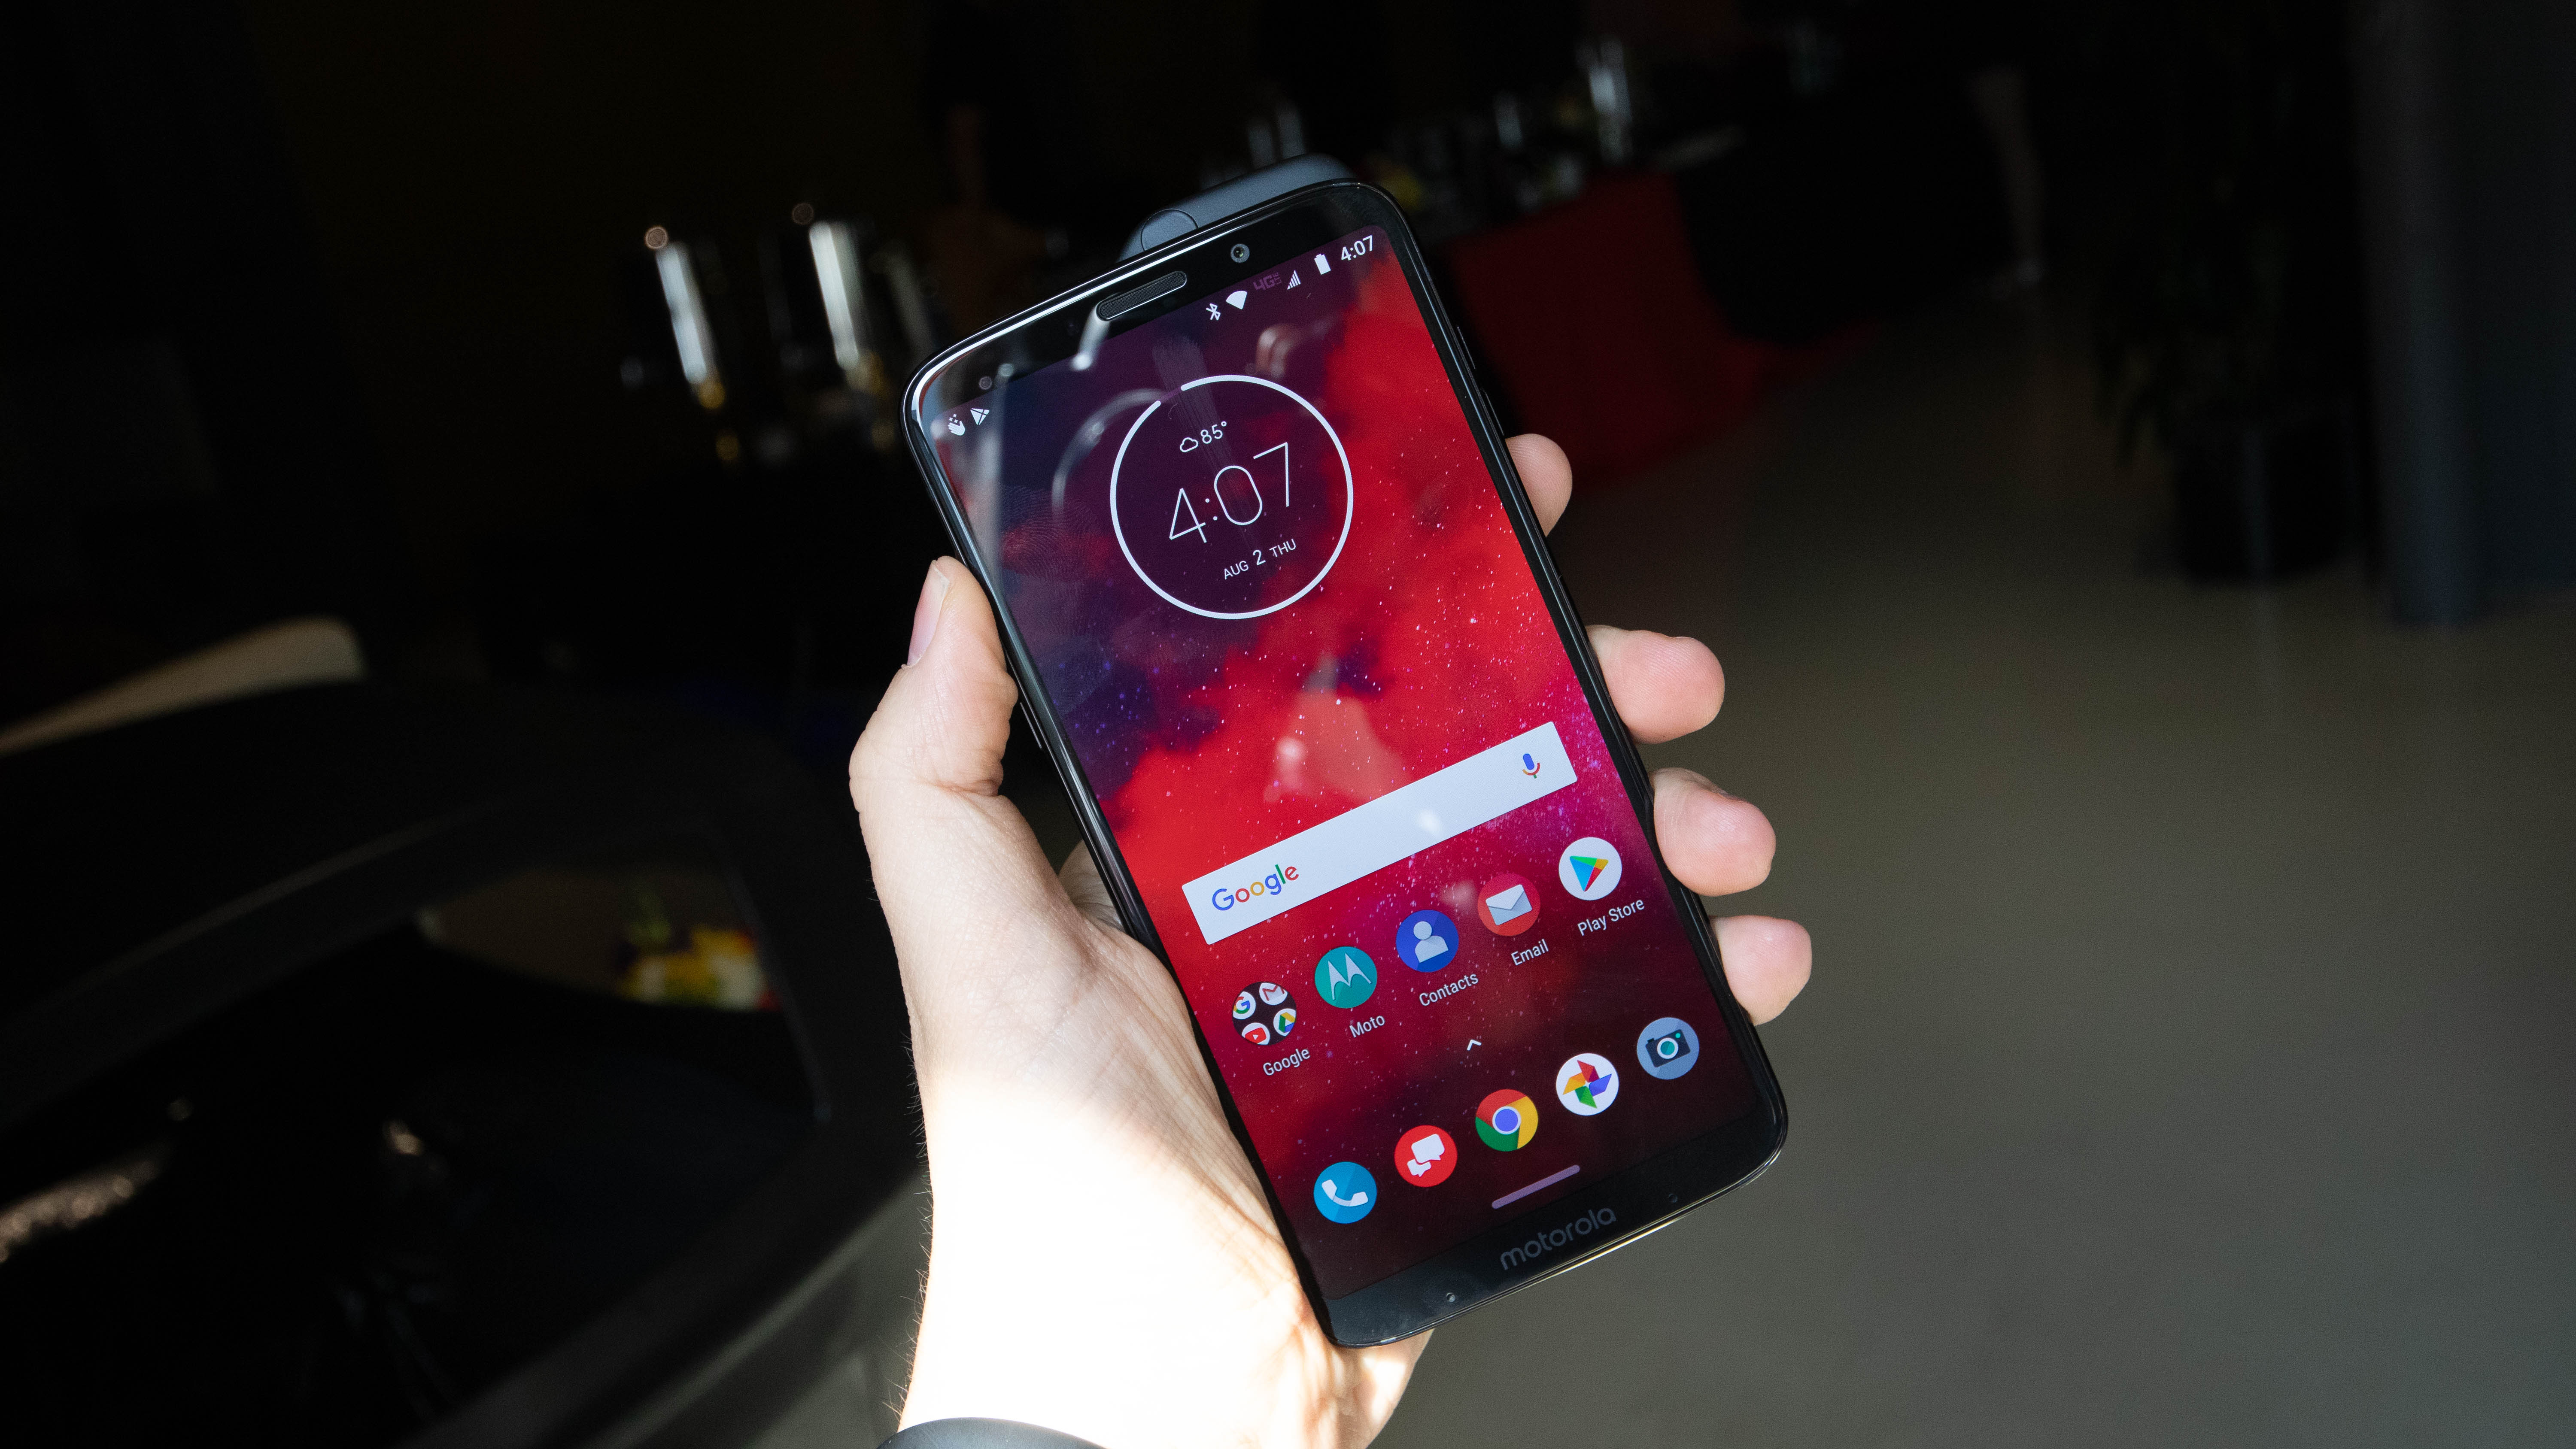 The new Motorola Razr is a sleek foldable flip phone but it doesn't justify the high price